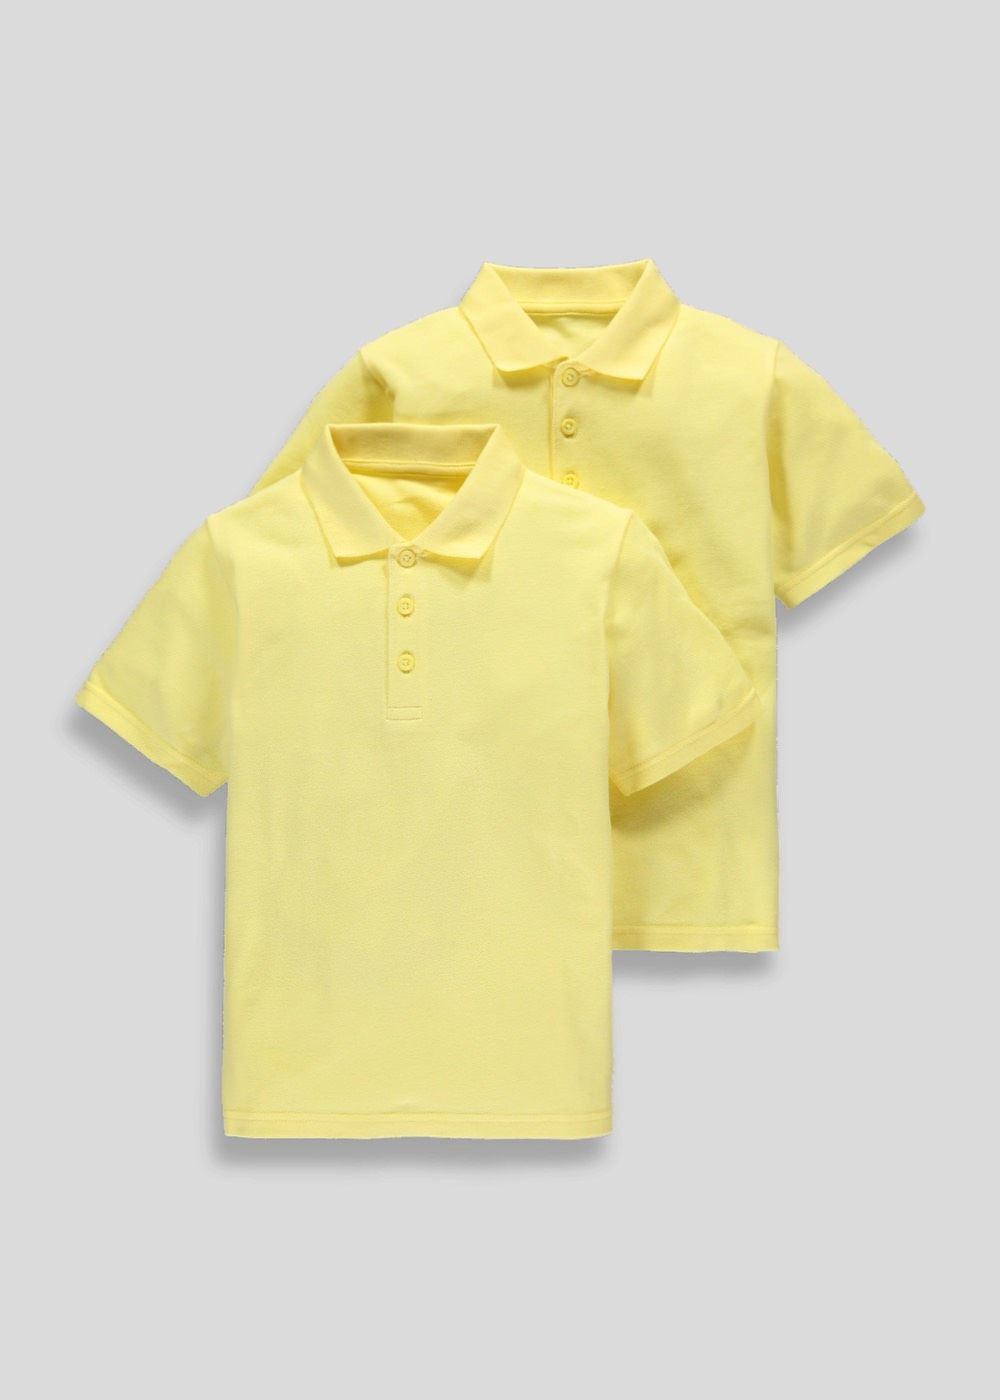 5f89d037b Unisex 2 Pack School Polo Shirts (3-16yrs) | Back to School | Pinterest |  School, School uniform and School polo shirts